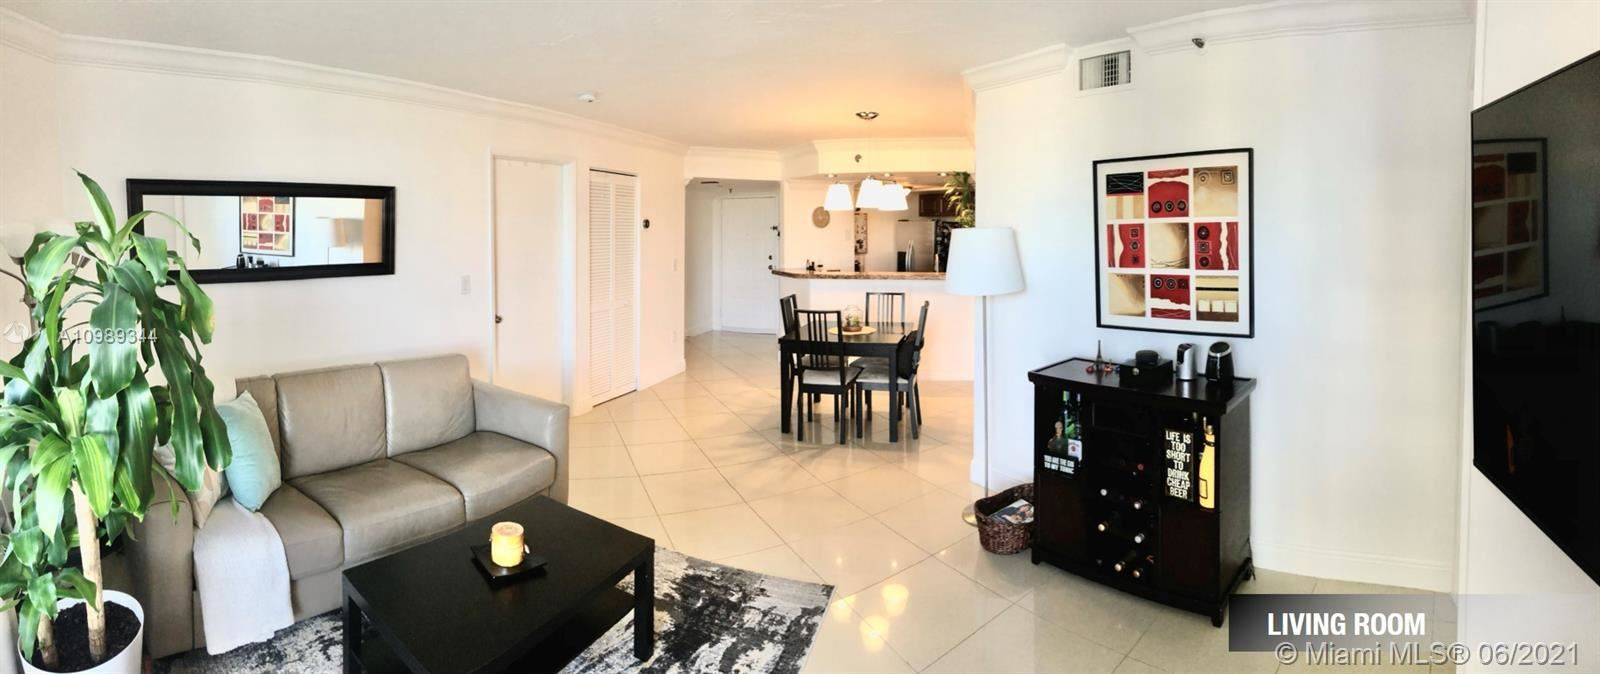 Photo of 5880 E Collins Ave #505, Miami Beach, FL 33140 (MLS # A10989344)